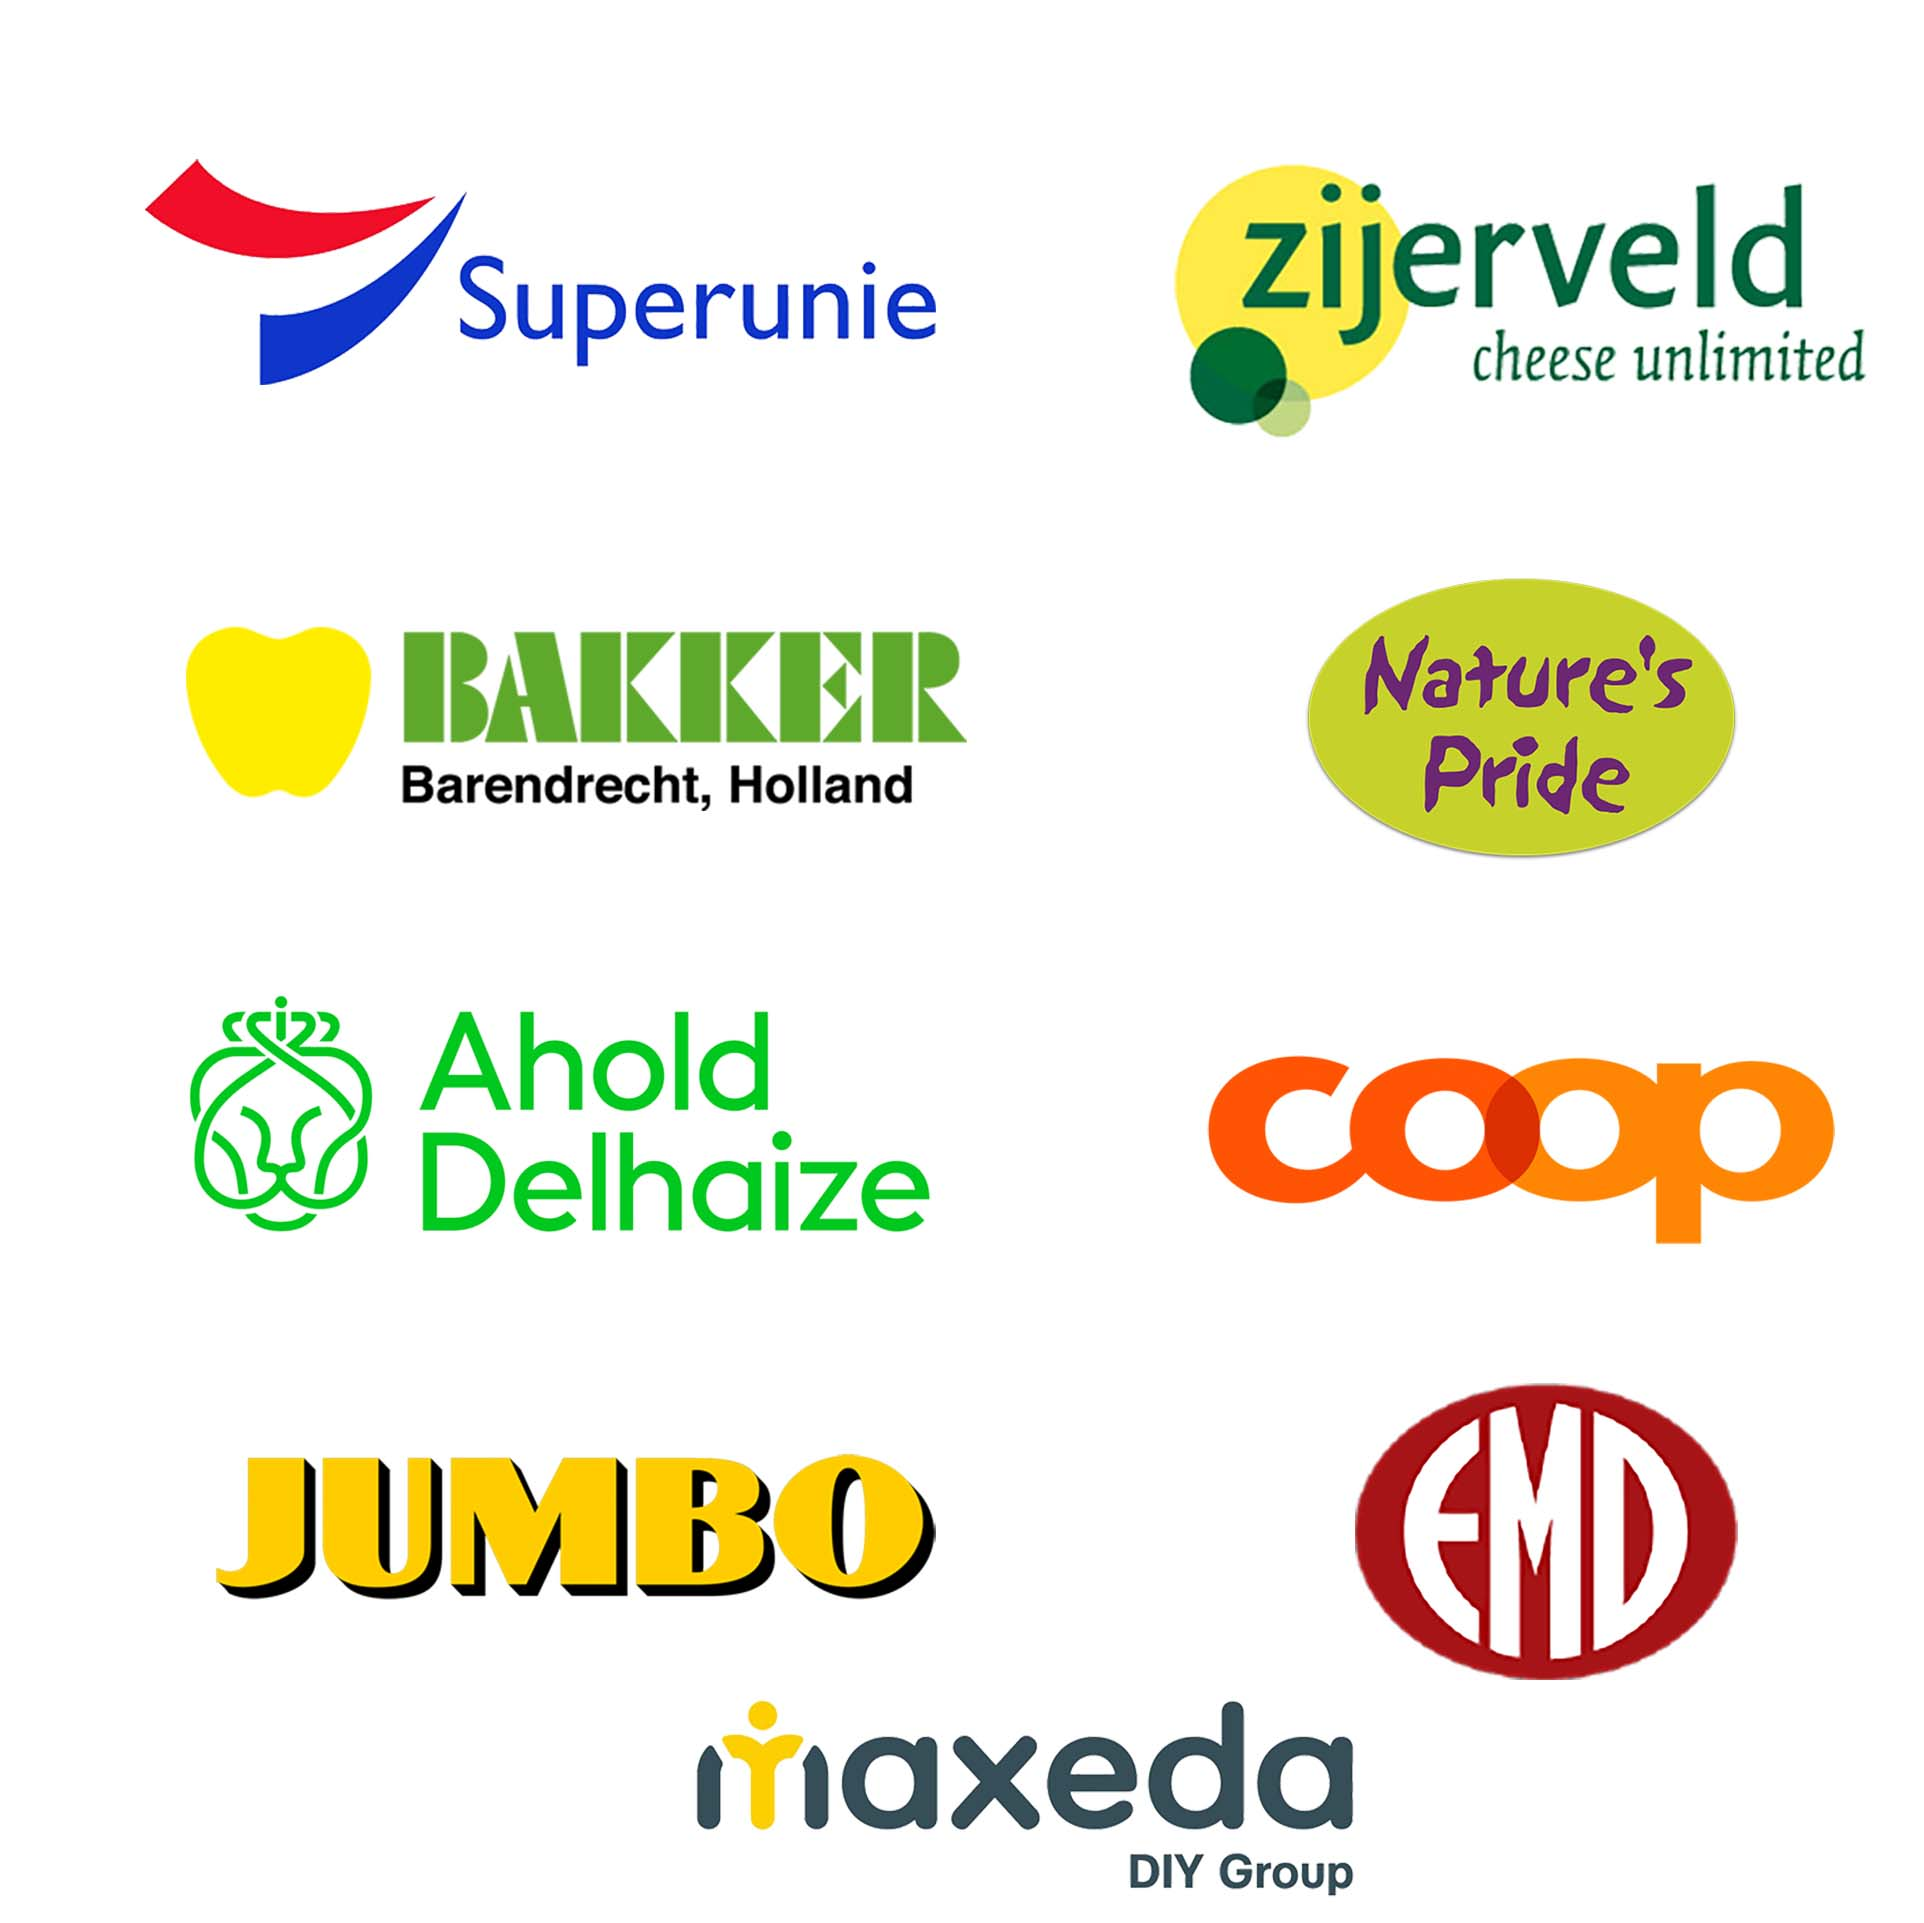 Trusted by Jumbo, Superunie, Ahold Delhaize - Our community